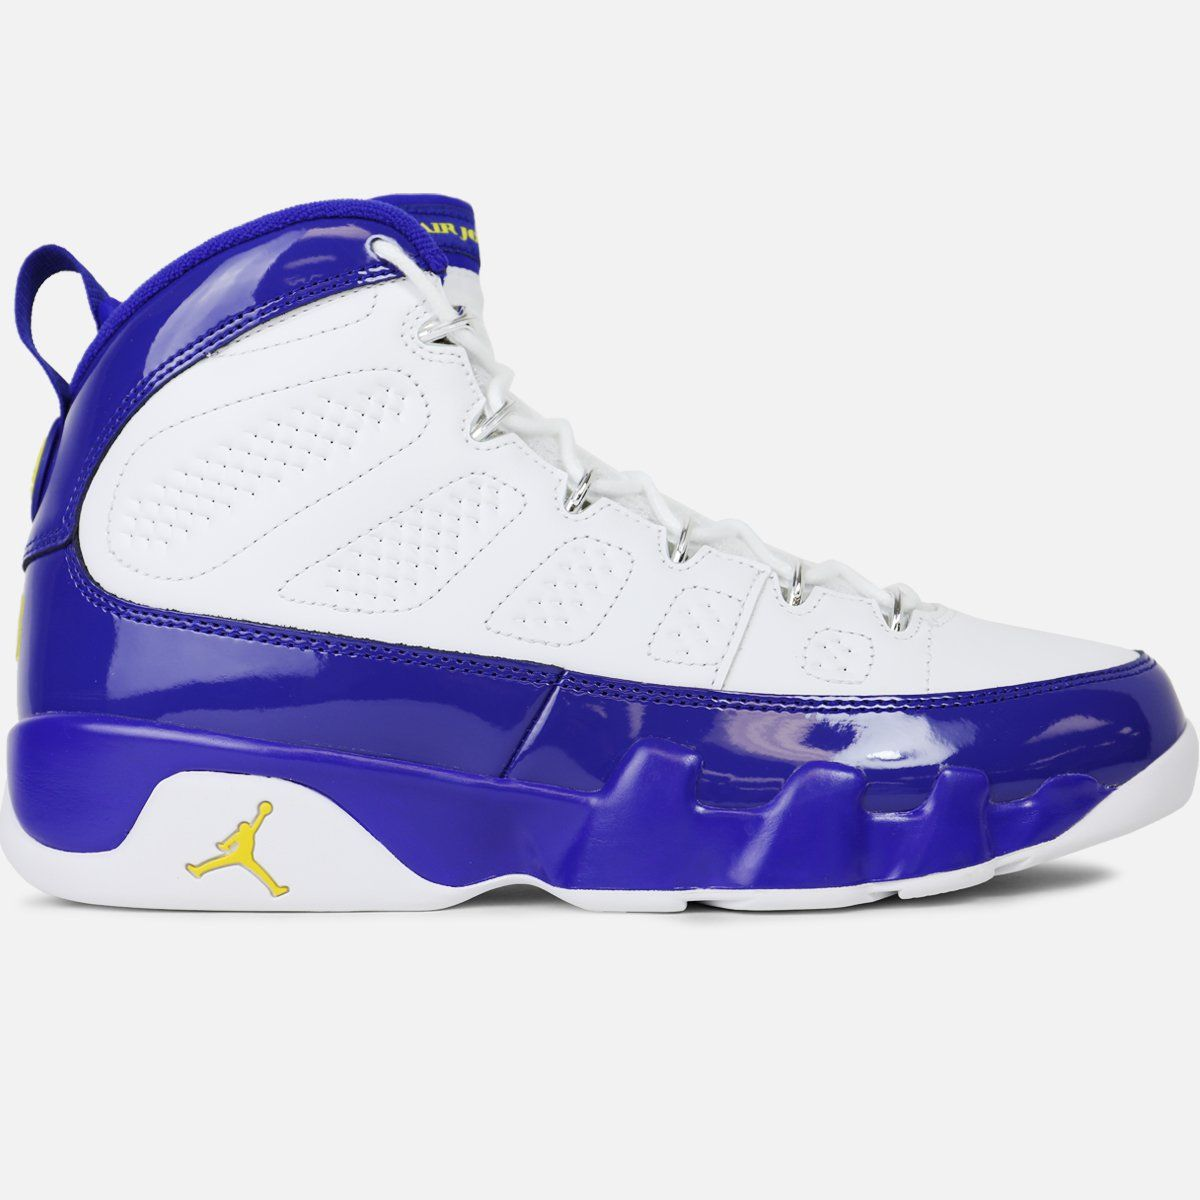 Footwear � The Air Jordan 9 Kobe Bryant ...